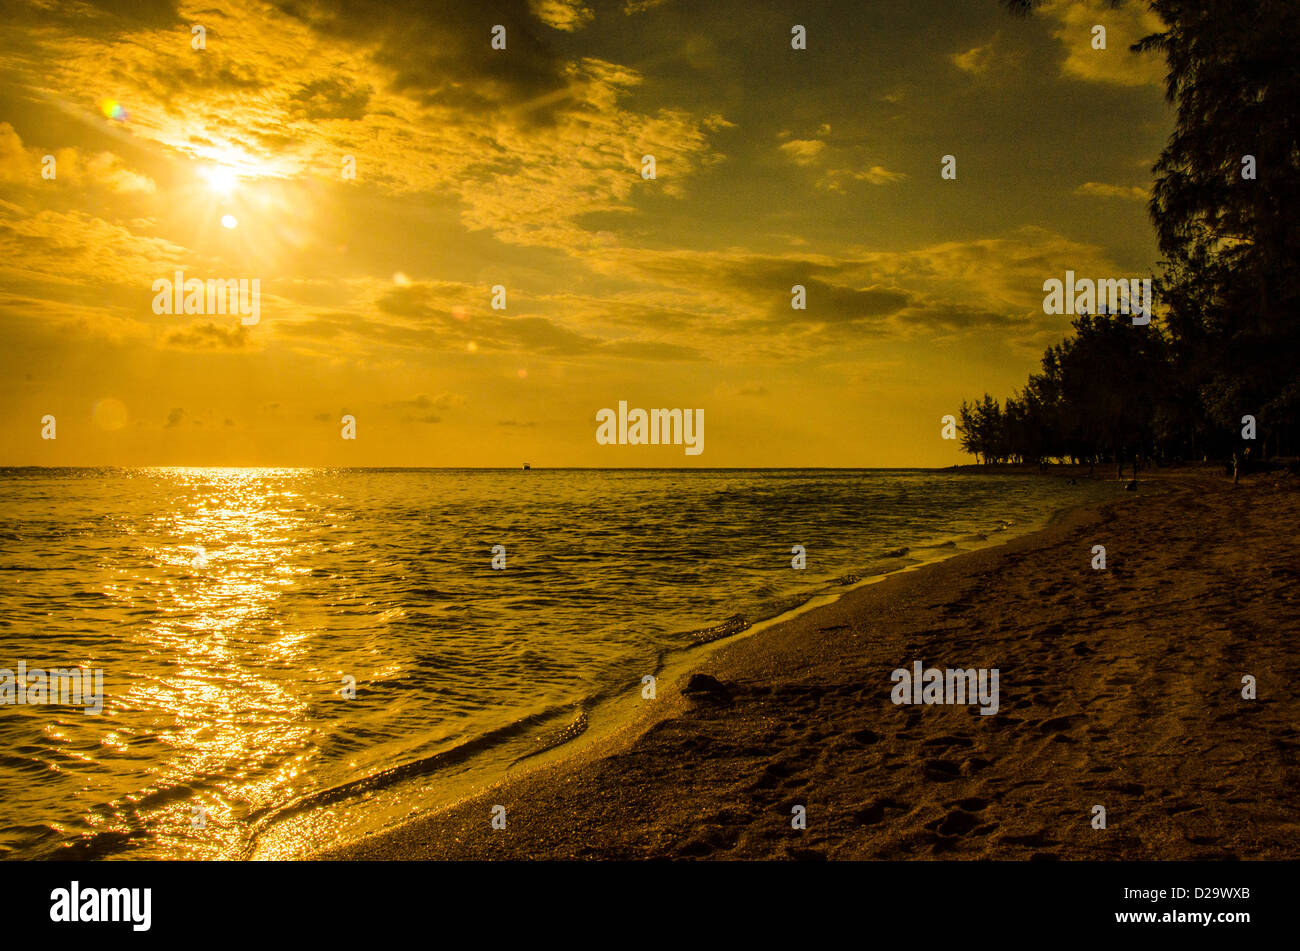 Bel Ombre sunset - Stock Image